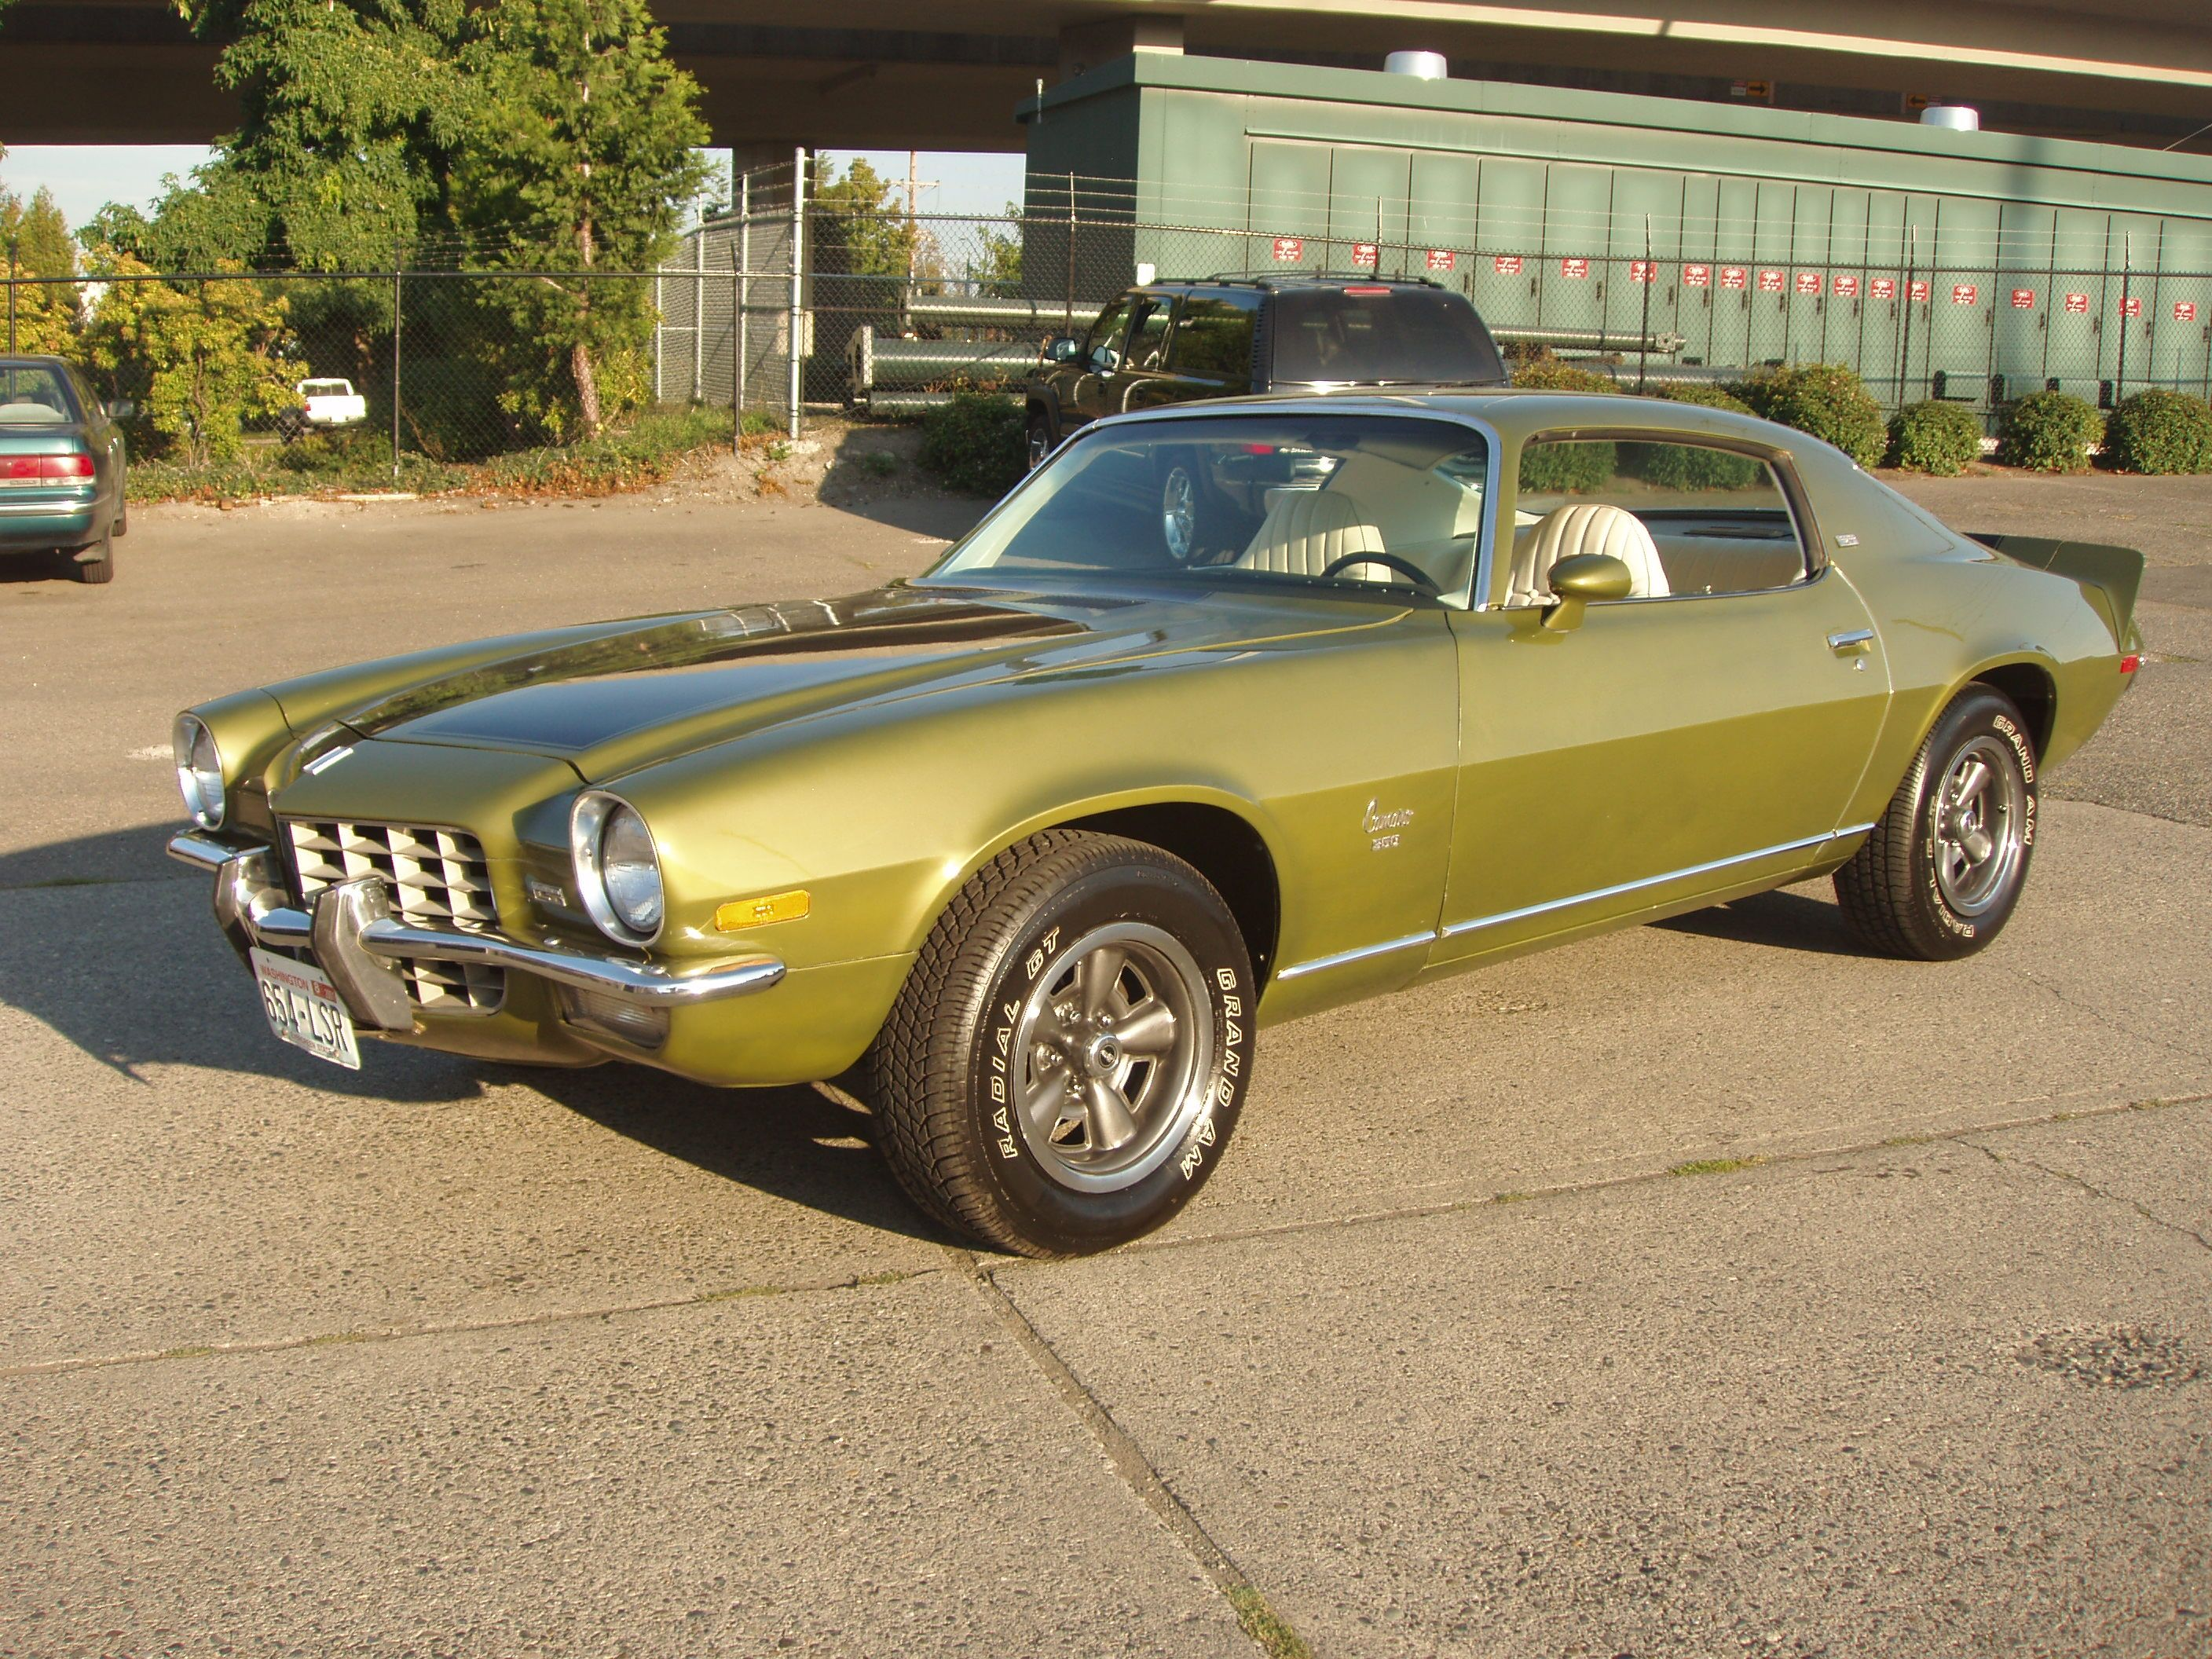 1973 Camaro Type Lt Green Gold Custom Camaro Hot Rods Cars Muscle Camaro